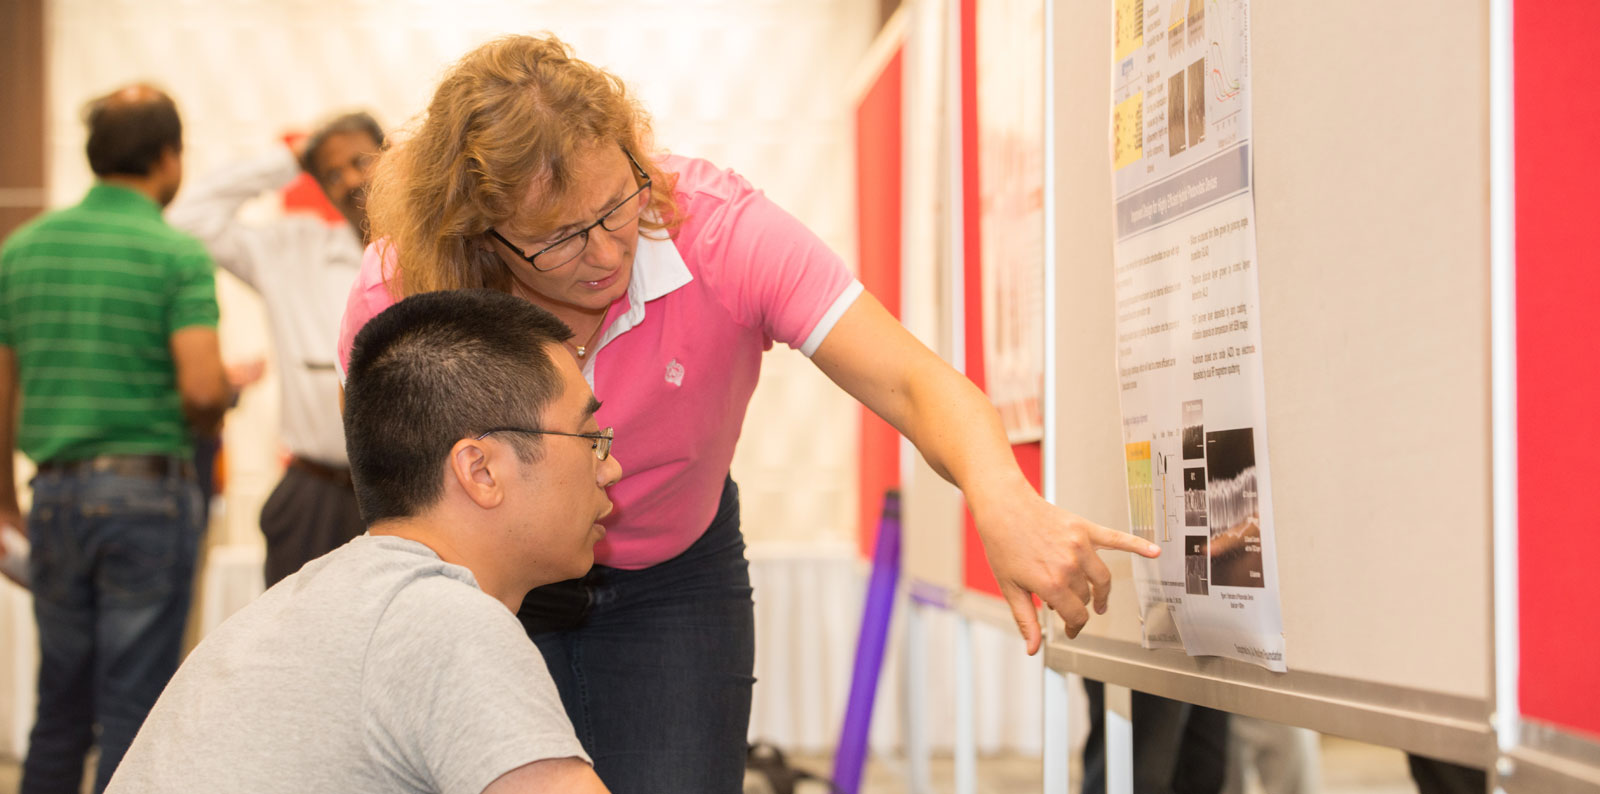 Dr. Eva Schubert discusses a poster with a colleague.